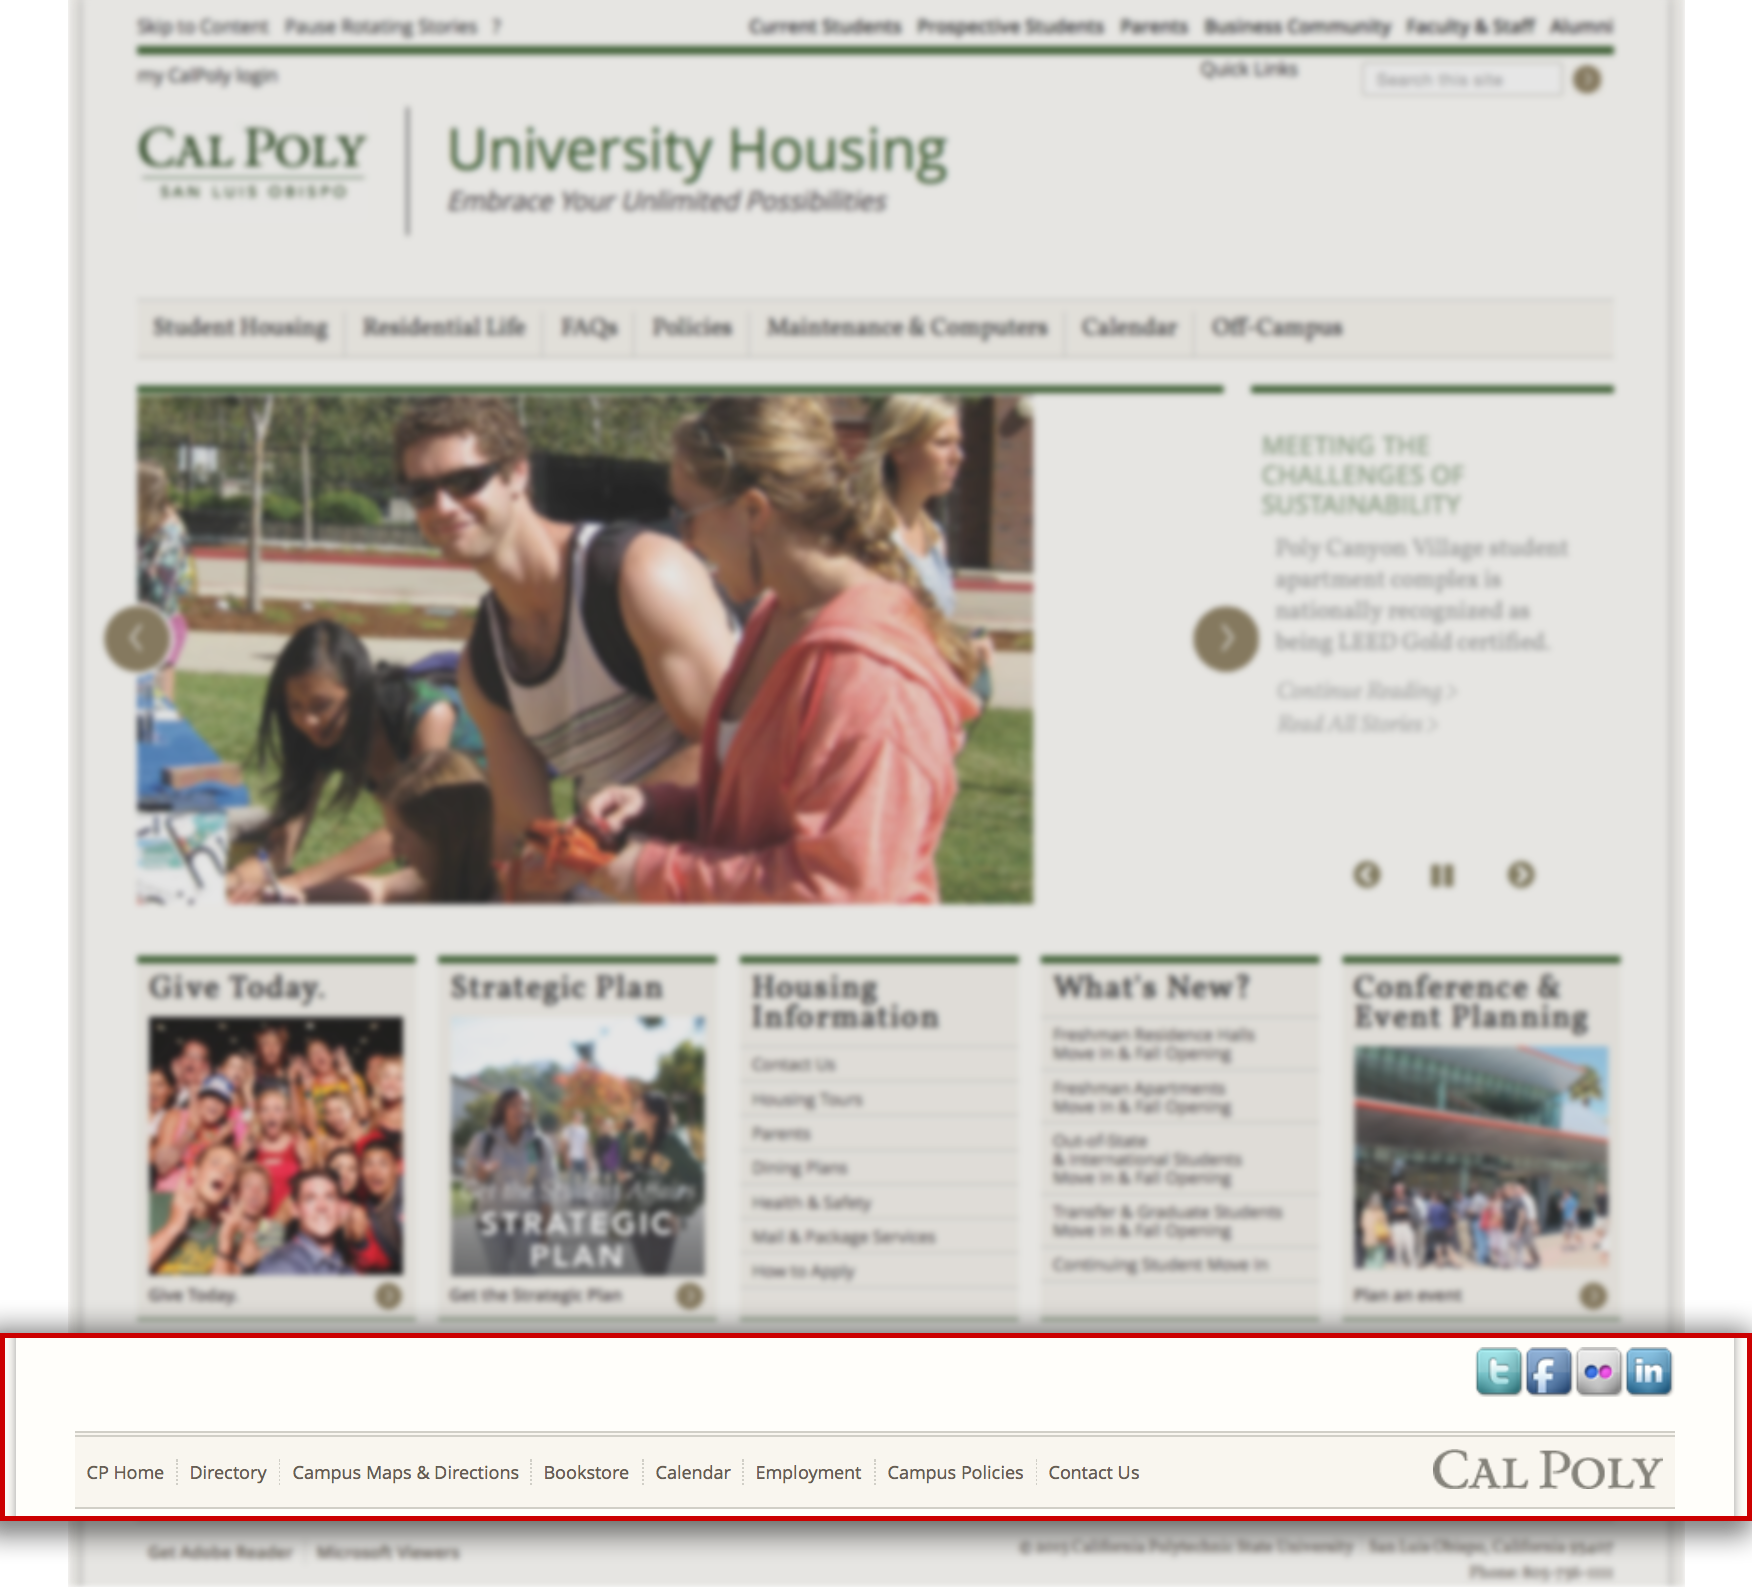 University housing home page with the highlighted footer.